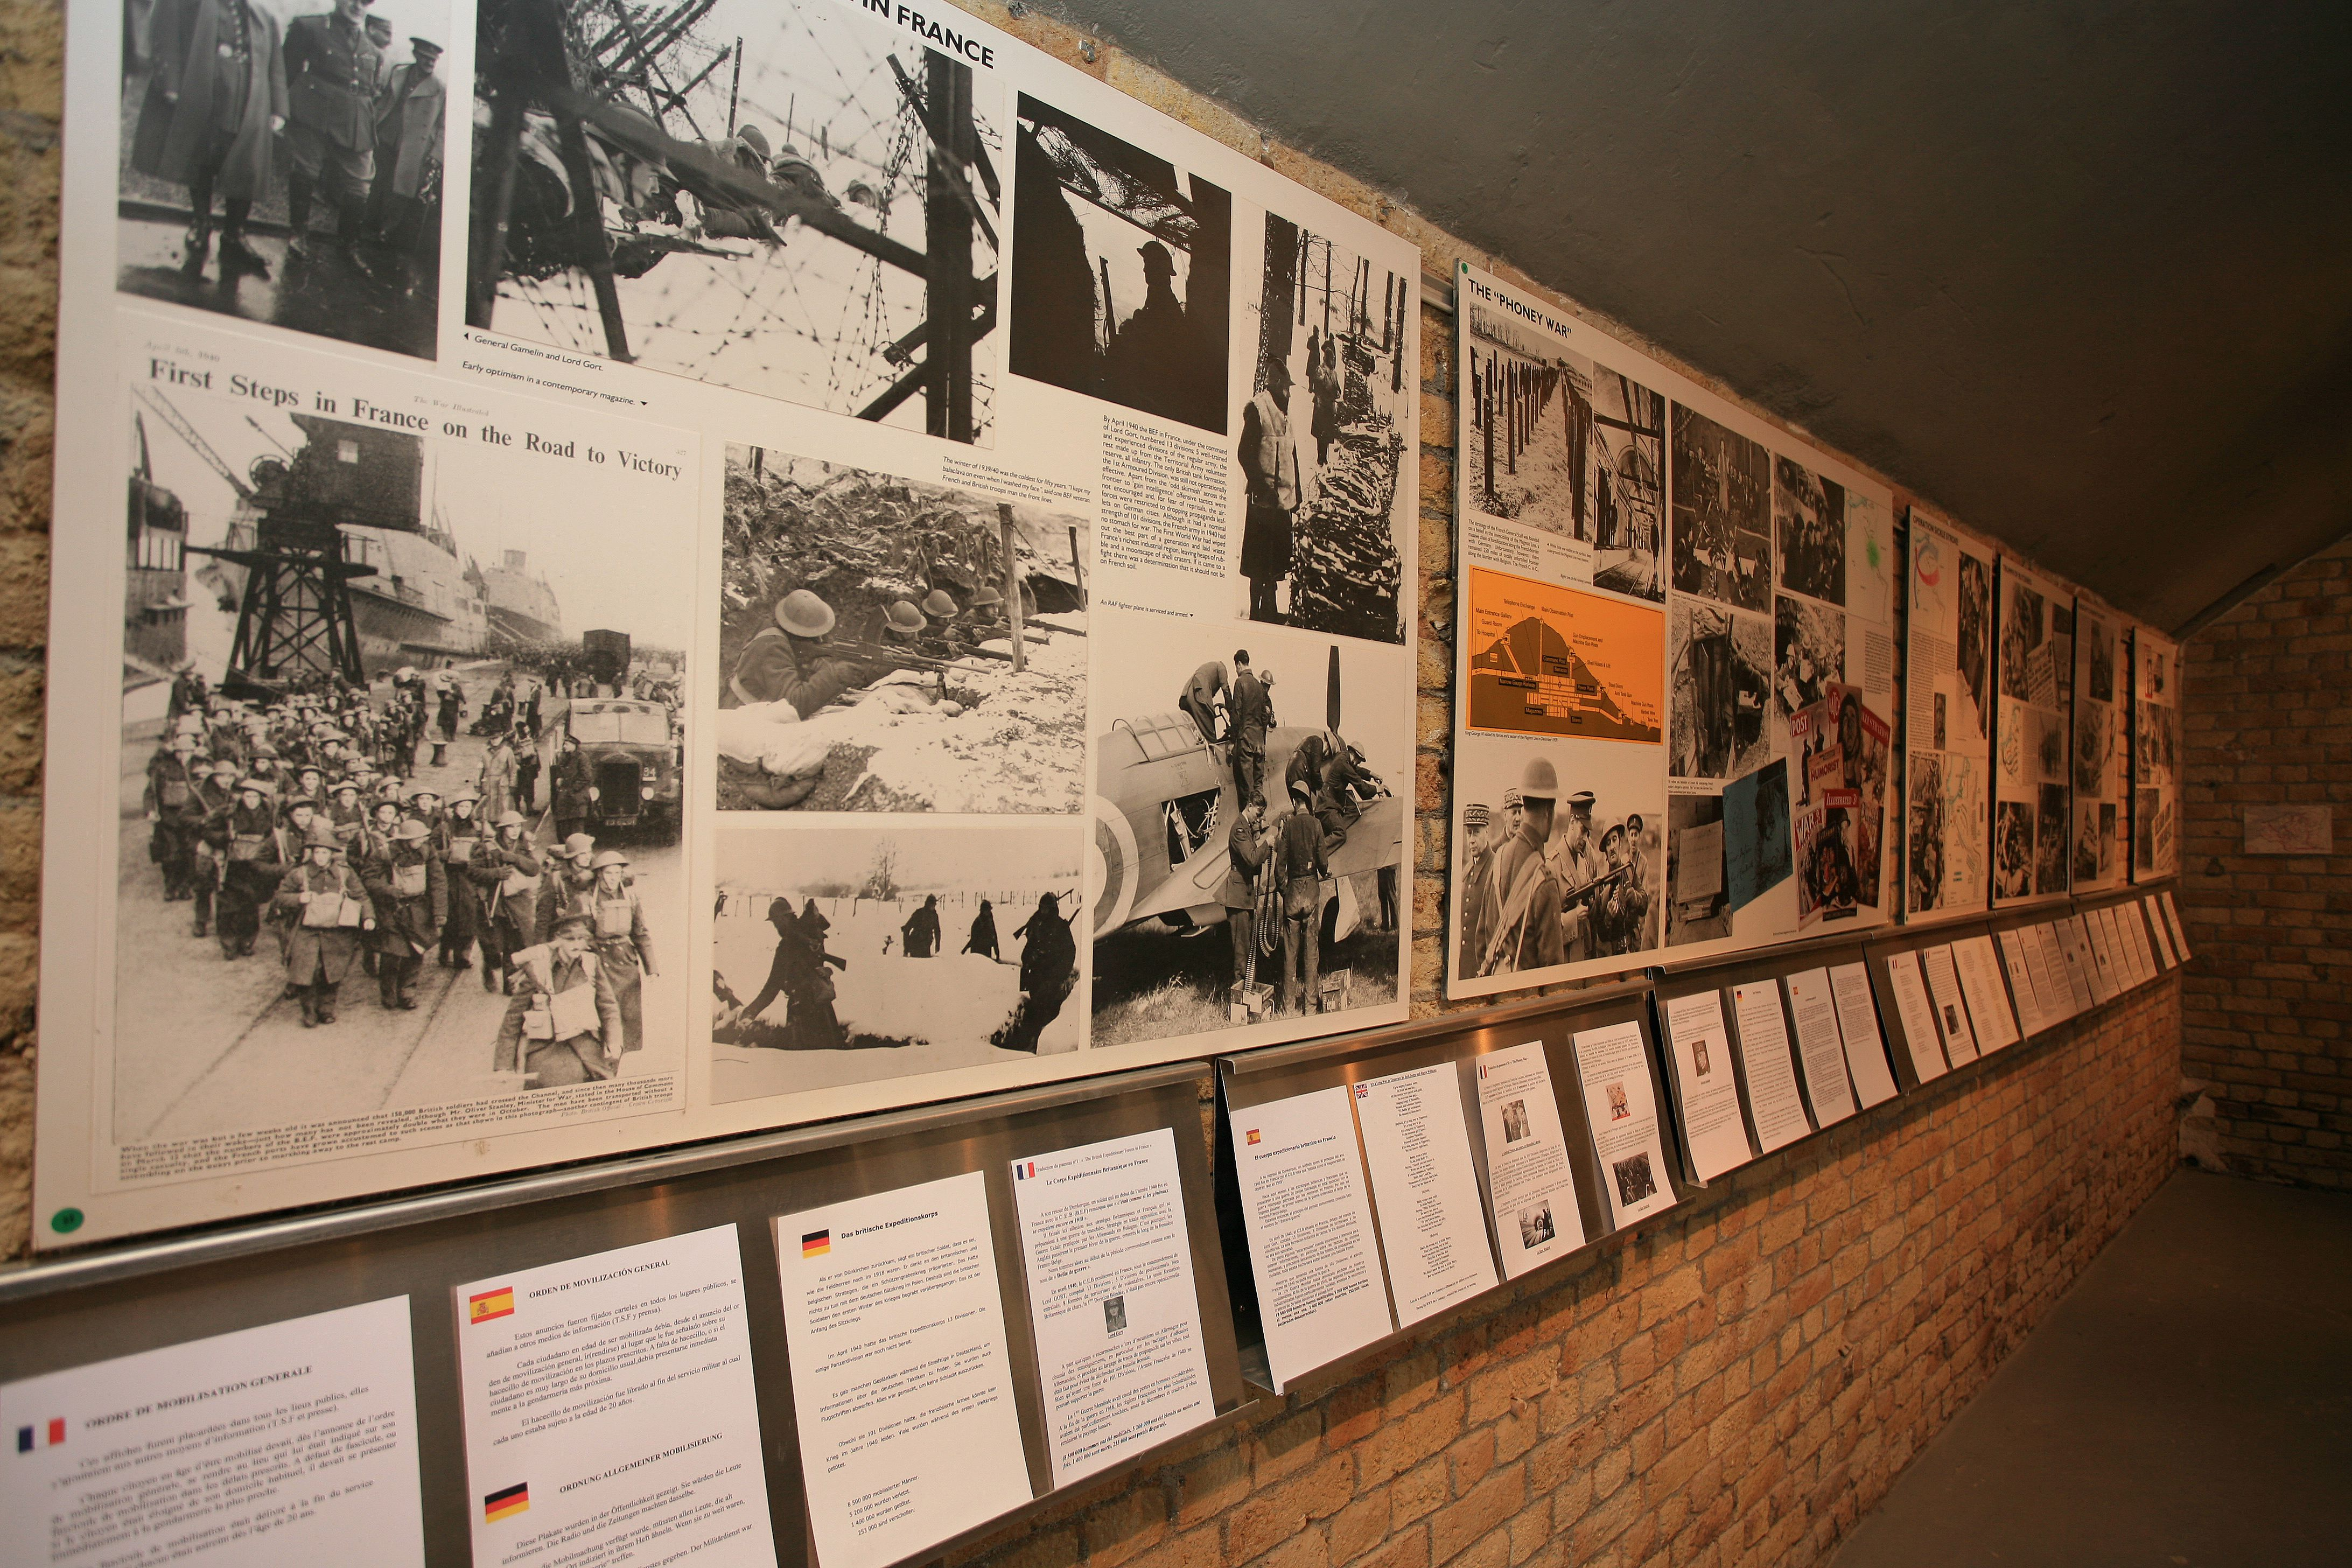 A photographic exhibit at the Operation Dynamo Museum in Dunkirk